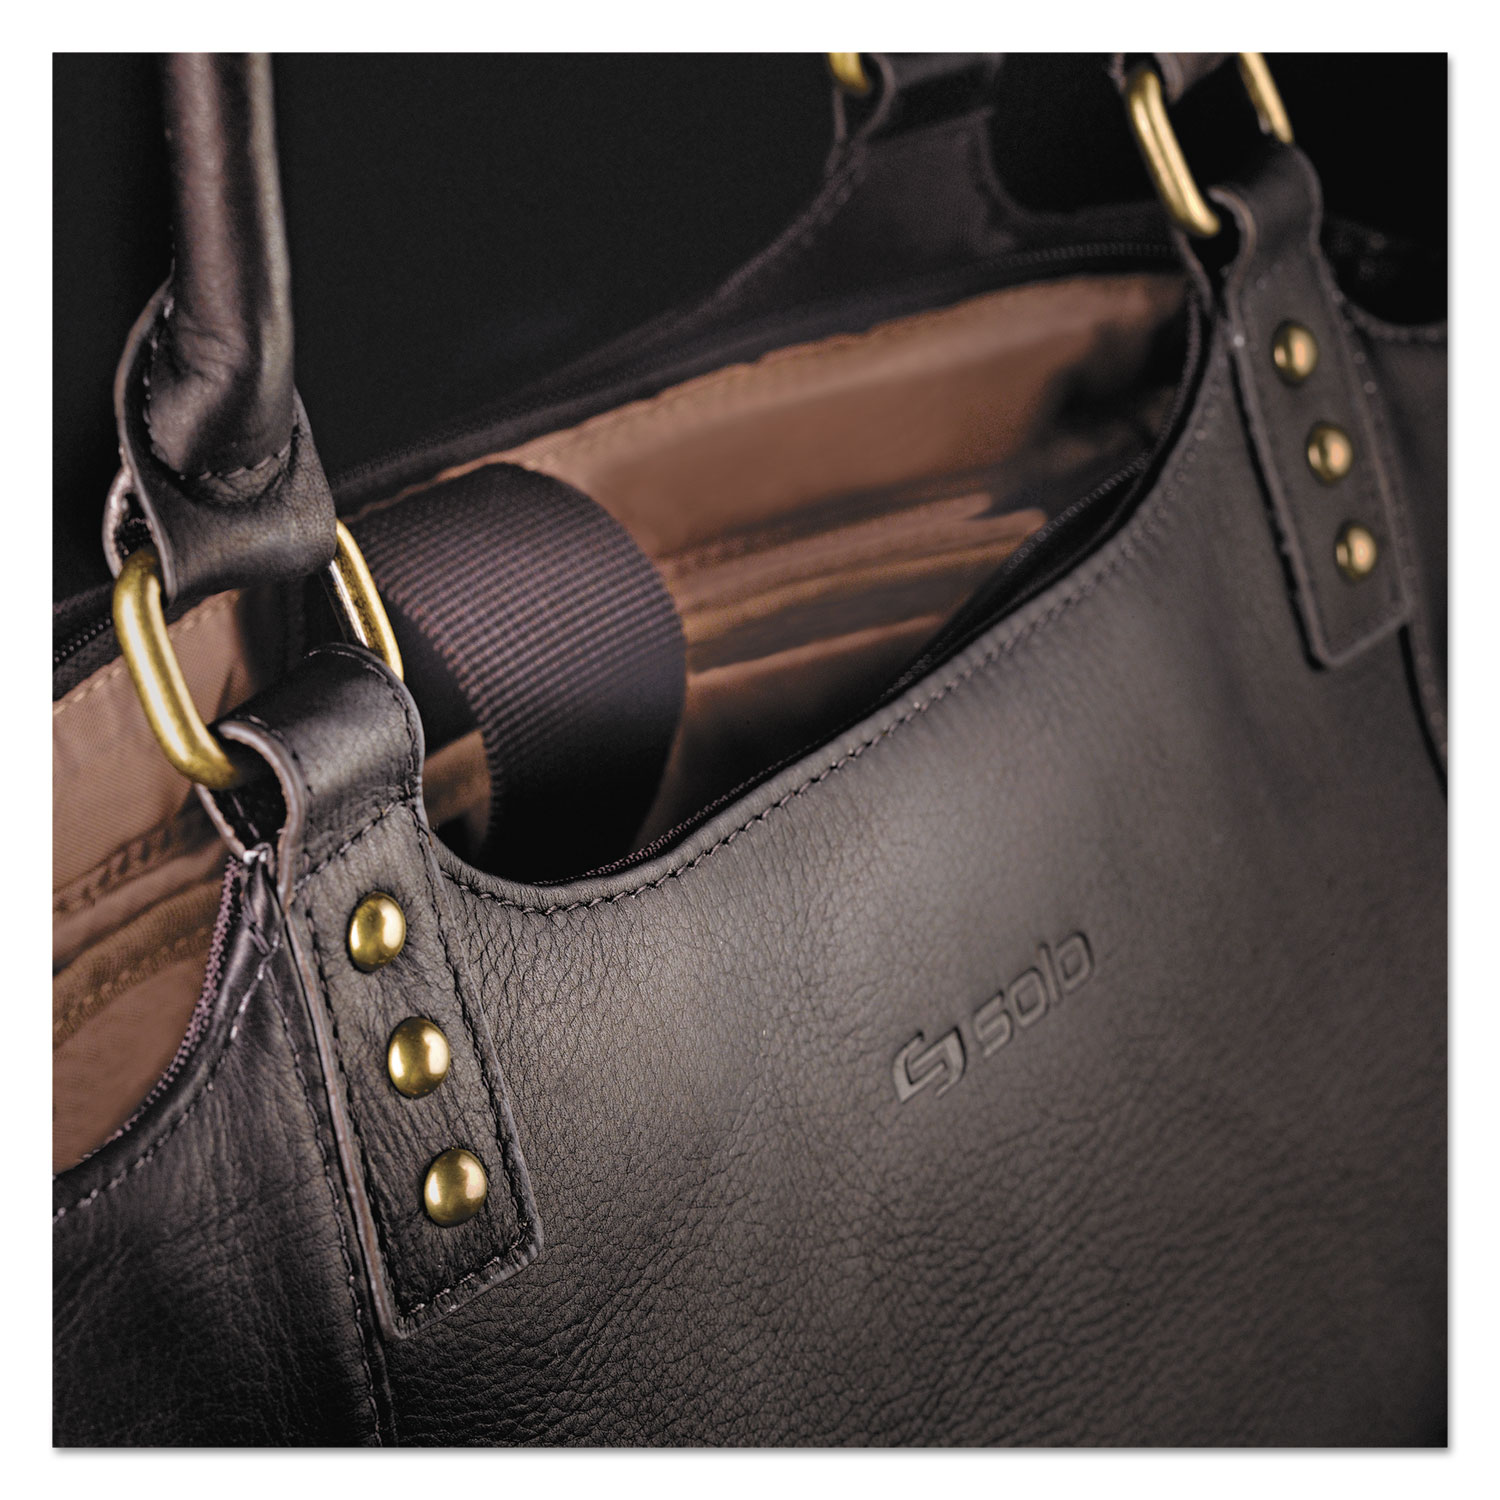 Executive Leather/Poly Bucket Tote, 16, 15 1/2 x 4 3/4 x 17 1/4, Espresso